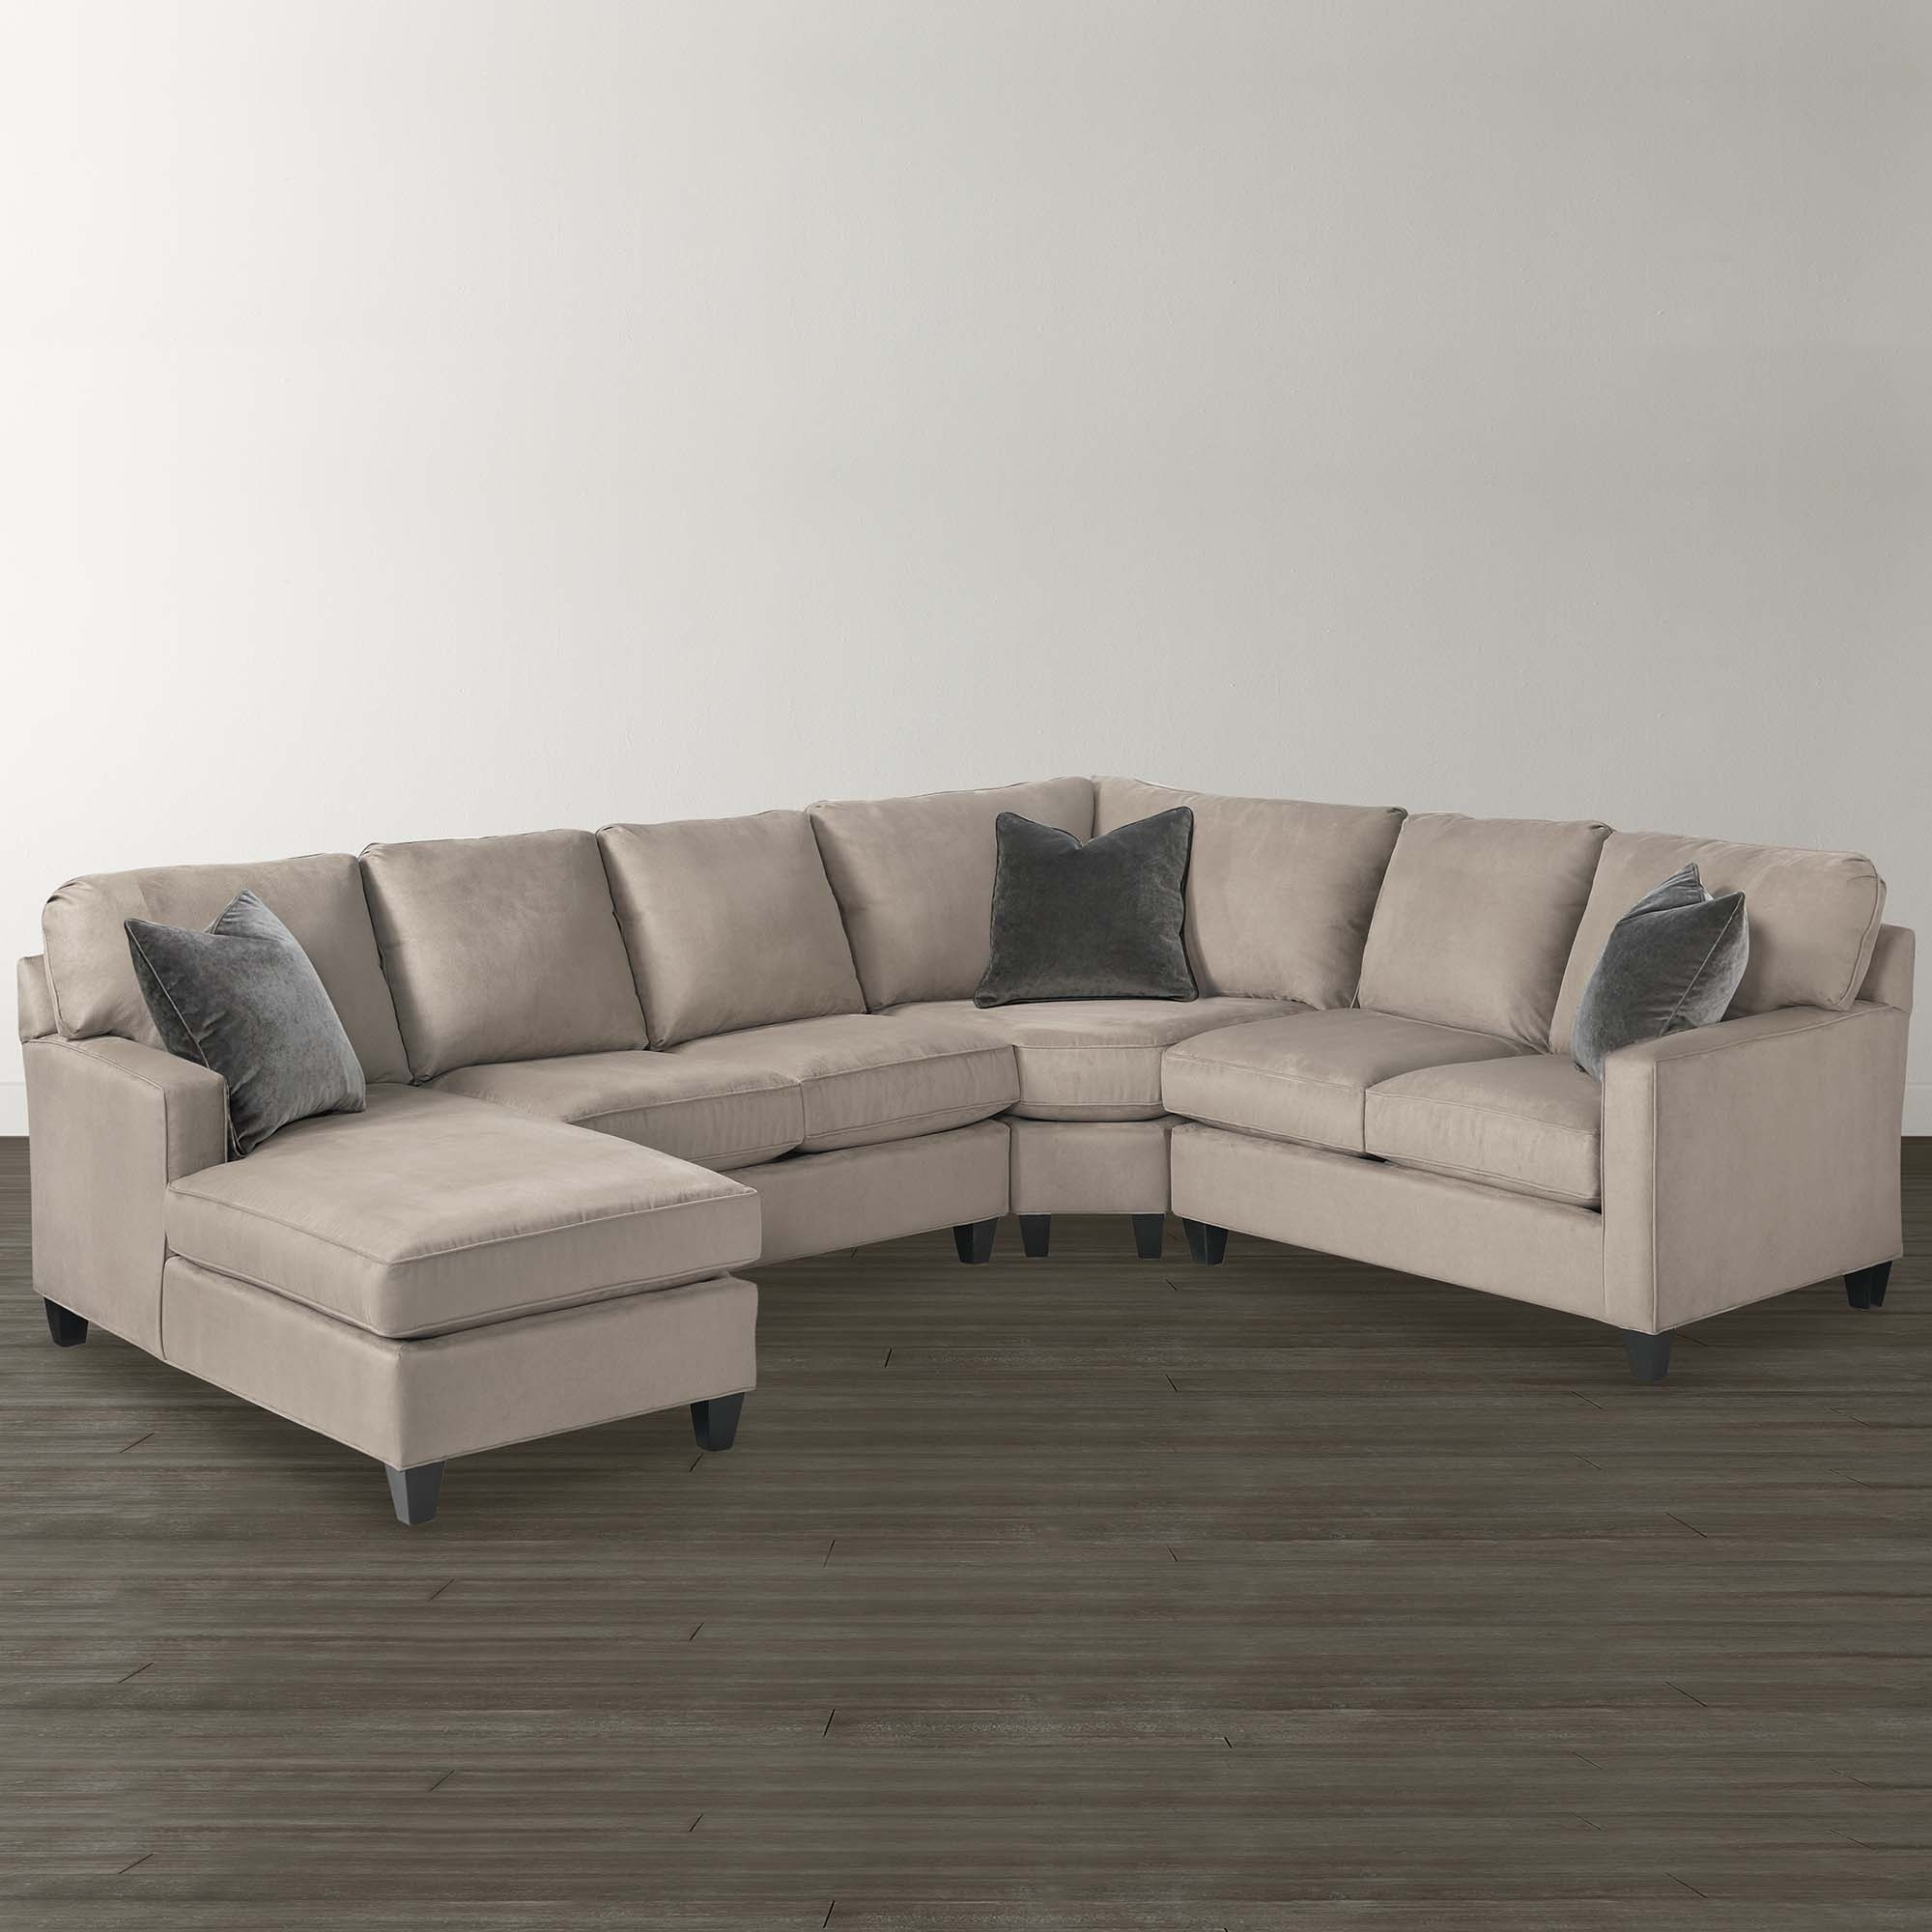 Well Known Dania Sectional Sofas For Sofa : Sofa Leather Sectional U Shape Creambassett Shaped (View 18 of 20)